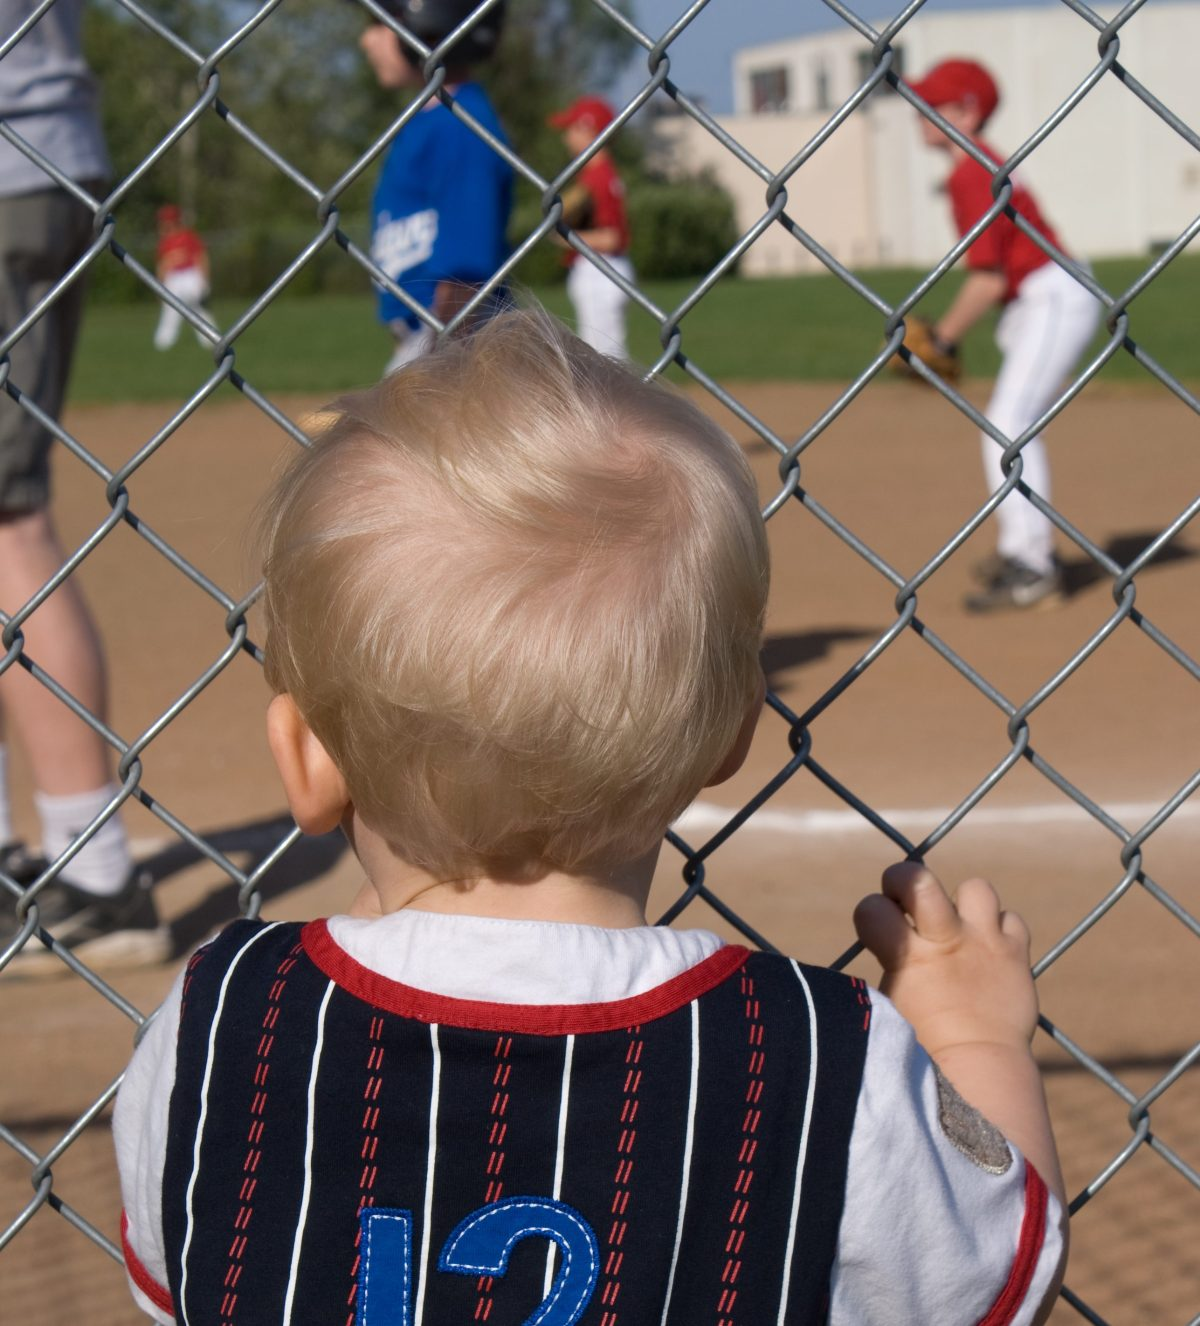 """To The """"Big Boy"""" At My Son's Baseball Game: You Give Me Hope"""